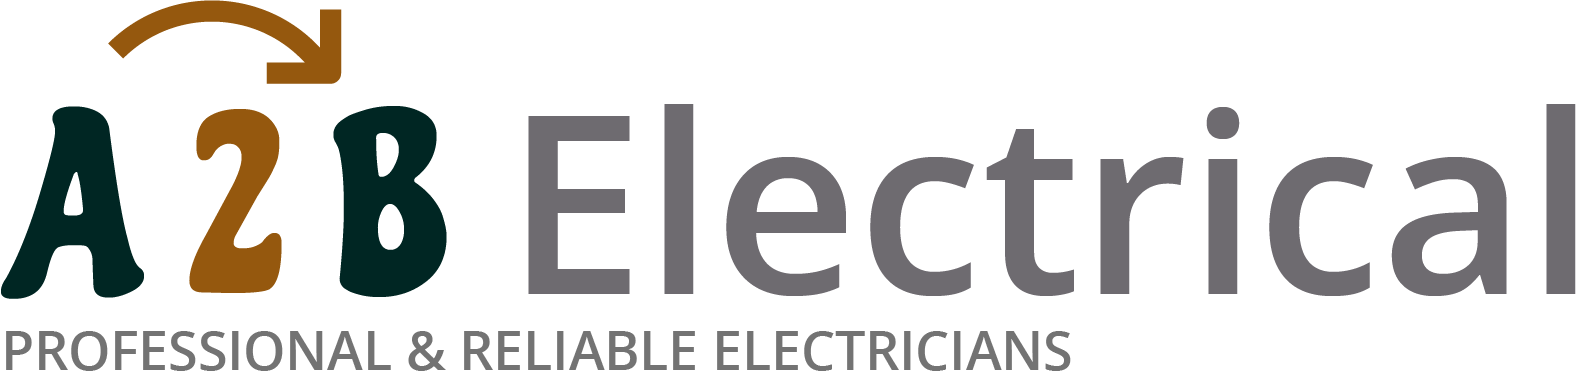 If you have electrical wiring problems in Tolworth, we can provide an electrician to have a look for you.